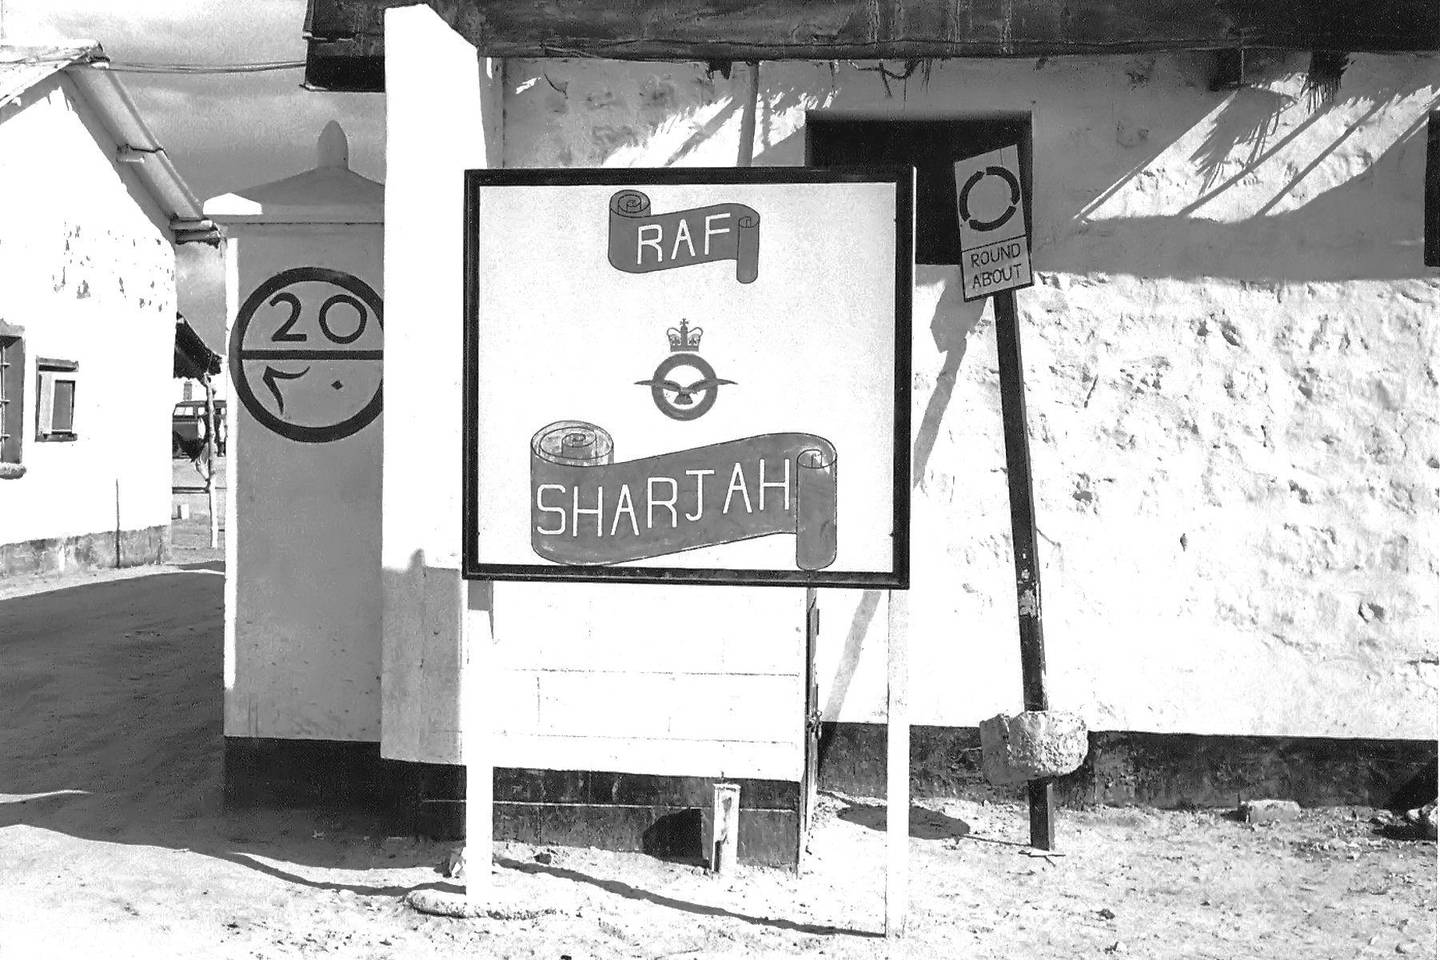 Archival photo showing Sharjah airbase in the 1960s. In 1963, the only indication that this was the main entrance to Sharjah Camp was the standard RAF sign FOR TIME FRAME / PLEASE ASK KAREN.MUST CREDIT Courtesy Taff John